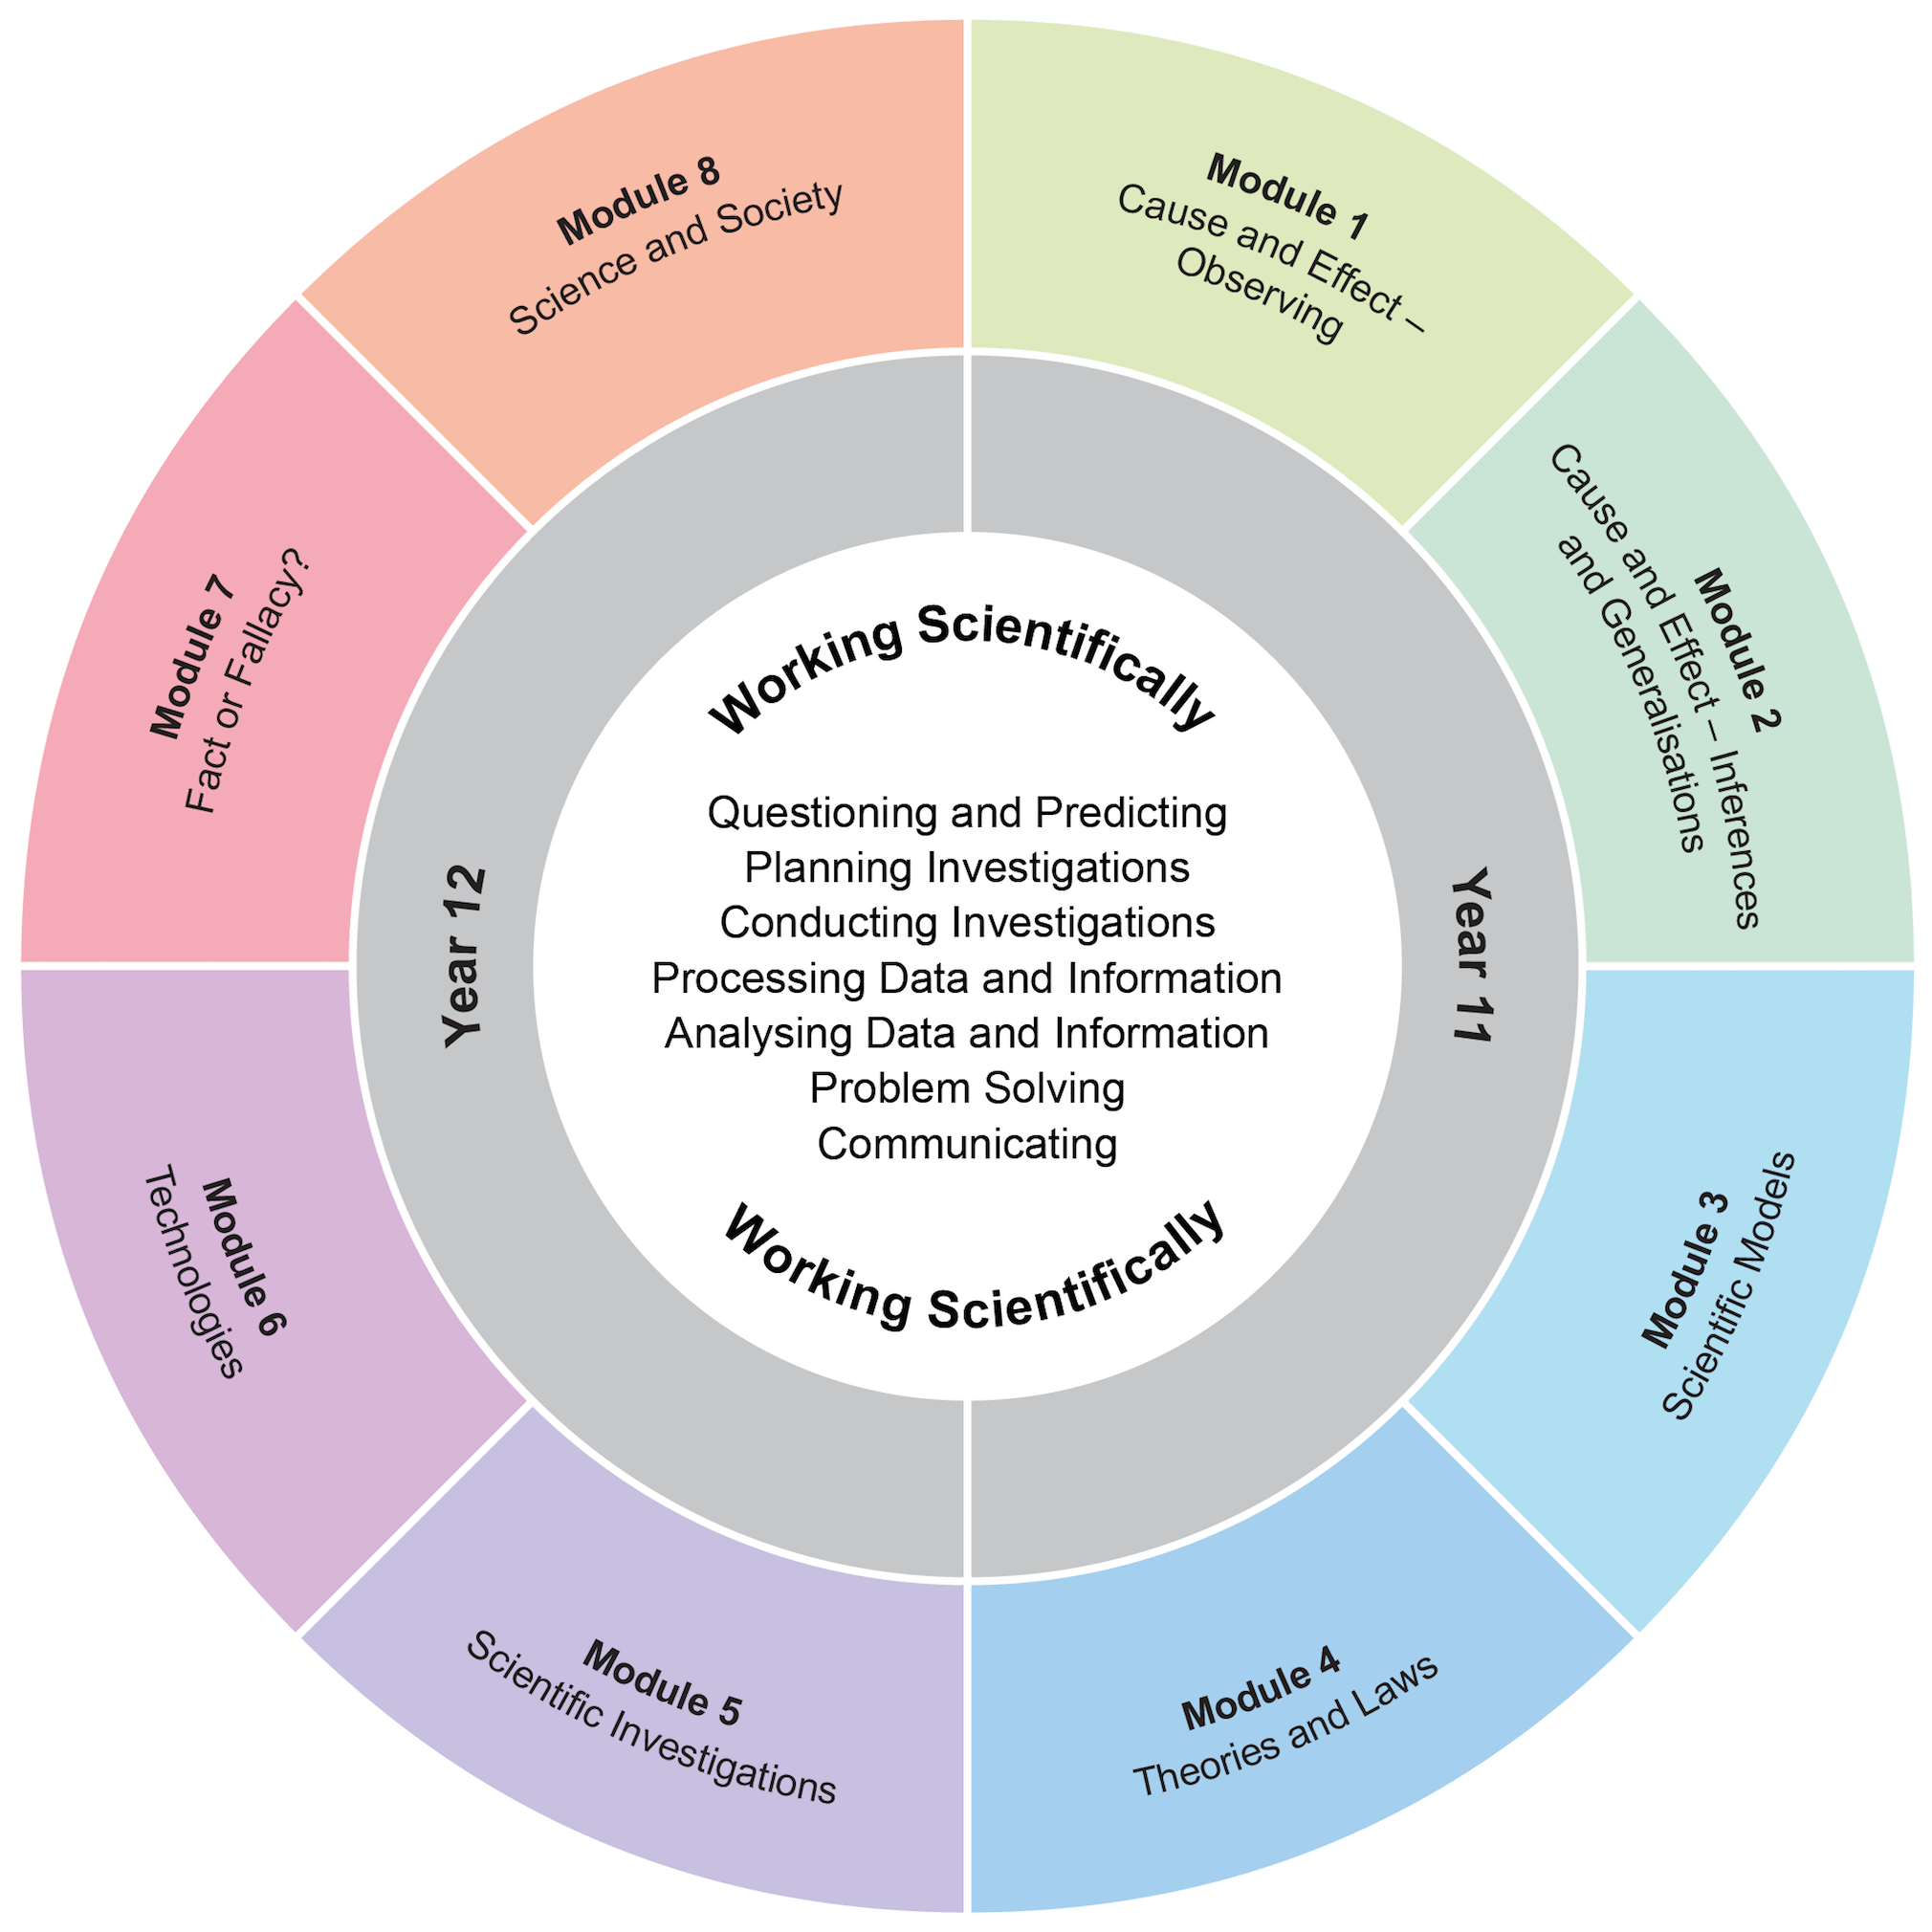 The organisation of content diagram consists of a central circle showing the Working Scientifically skills: Questioning and Predicting, Planning Investigations, Conducting Investigations, Processing Data and Information, Analysing Data and Information, Problem Solving, and Communicating. The central circle is surrounded by a ring divided in into the Year 11 and Year 12 modules. The Year 11 modules are: Module 1 Cause and Effect – Observing, Module 2 Cause and Effect – Inferences and Generalisations, Module 3 Scientific Models and Module 4 Theories and Laws. The Year 12 modules are: Module 5 Scientific Investigations, Module 6 Technologies, Module 7 Fact or Fallacy? and Module 8 Science and Society.